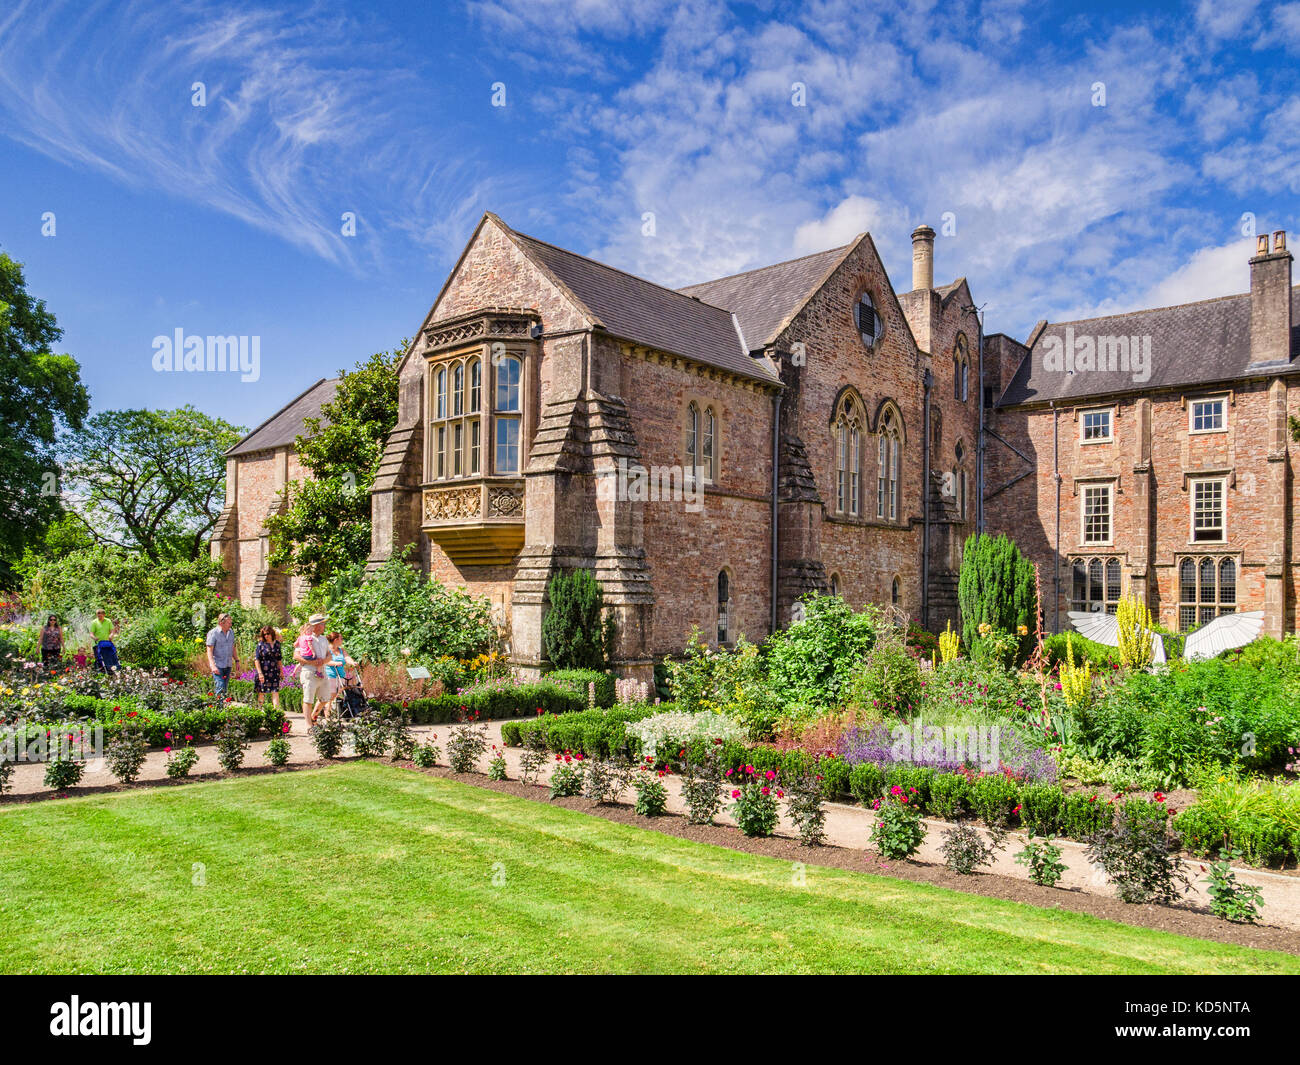 9 July 2017: Wells, Somerset, England, UK - Bishops Palace and Gardens in summer. - Stock Image